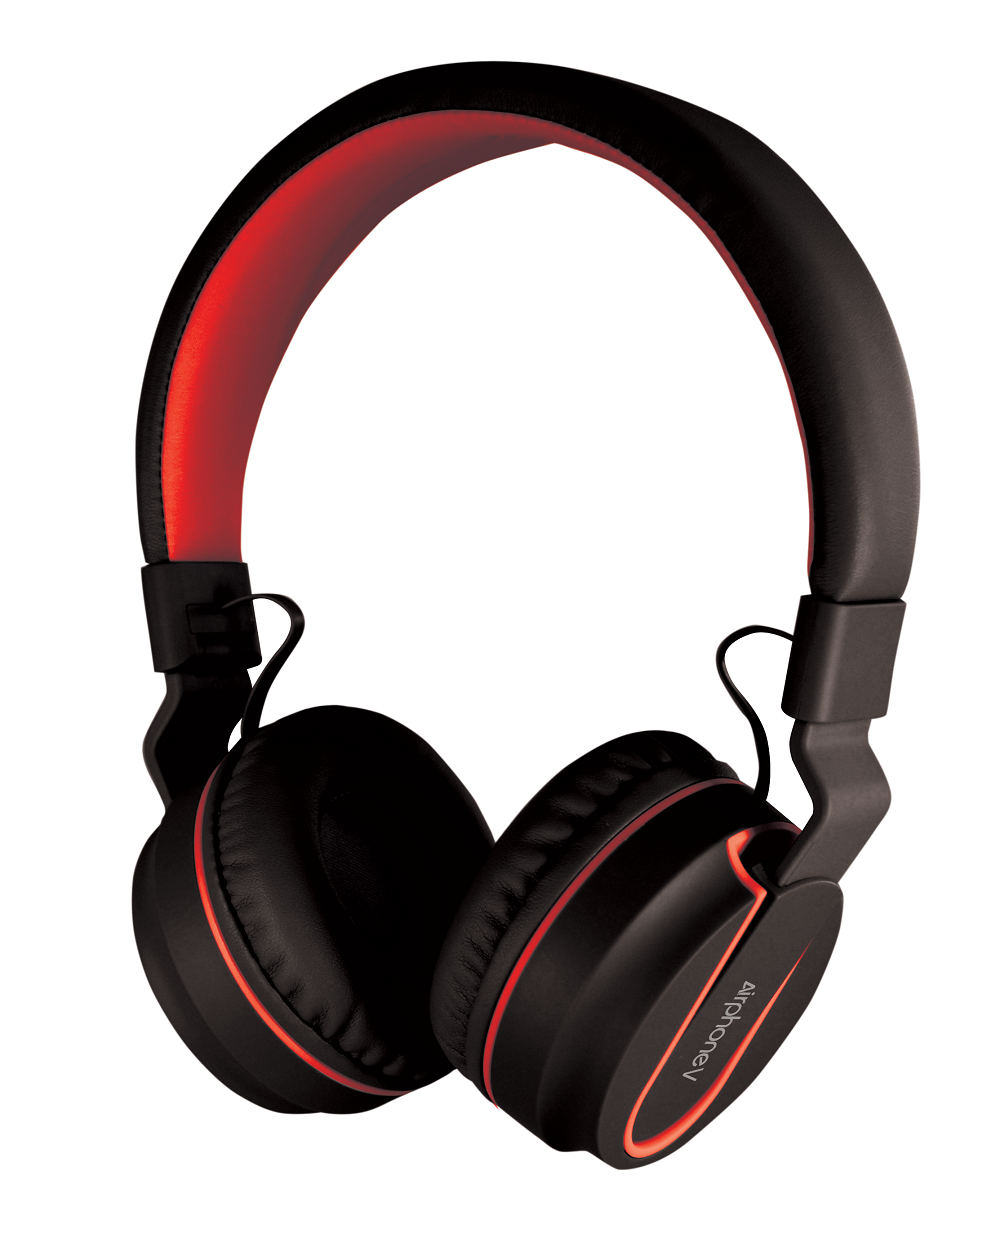 SonicGear AirphoneV Bluetooth Headphones Black-Red